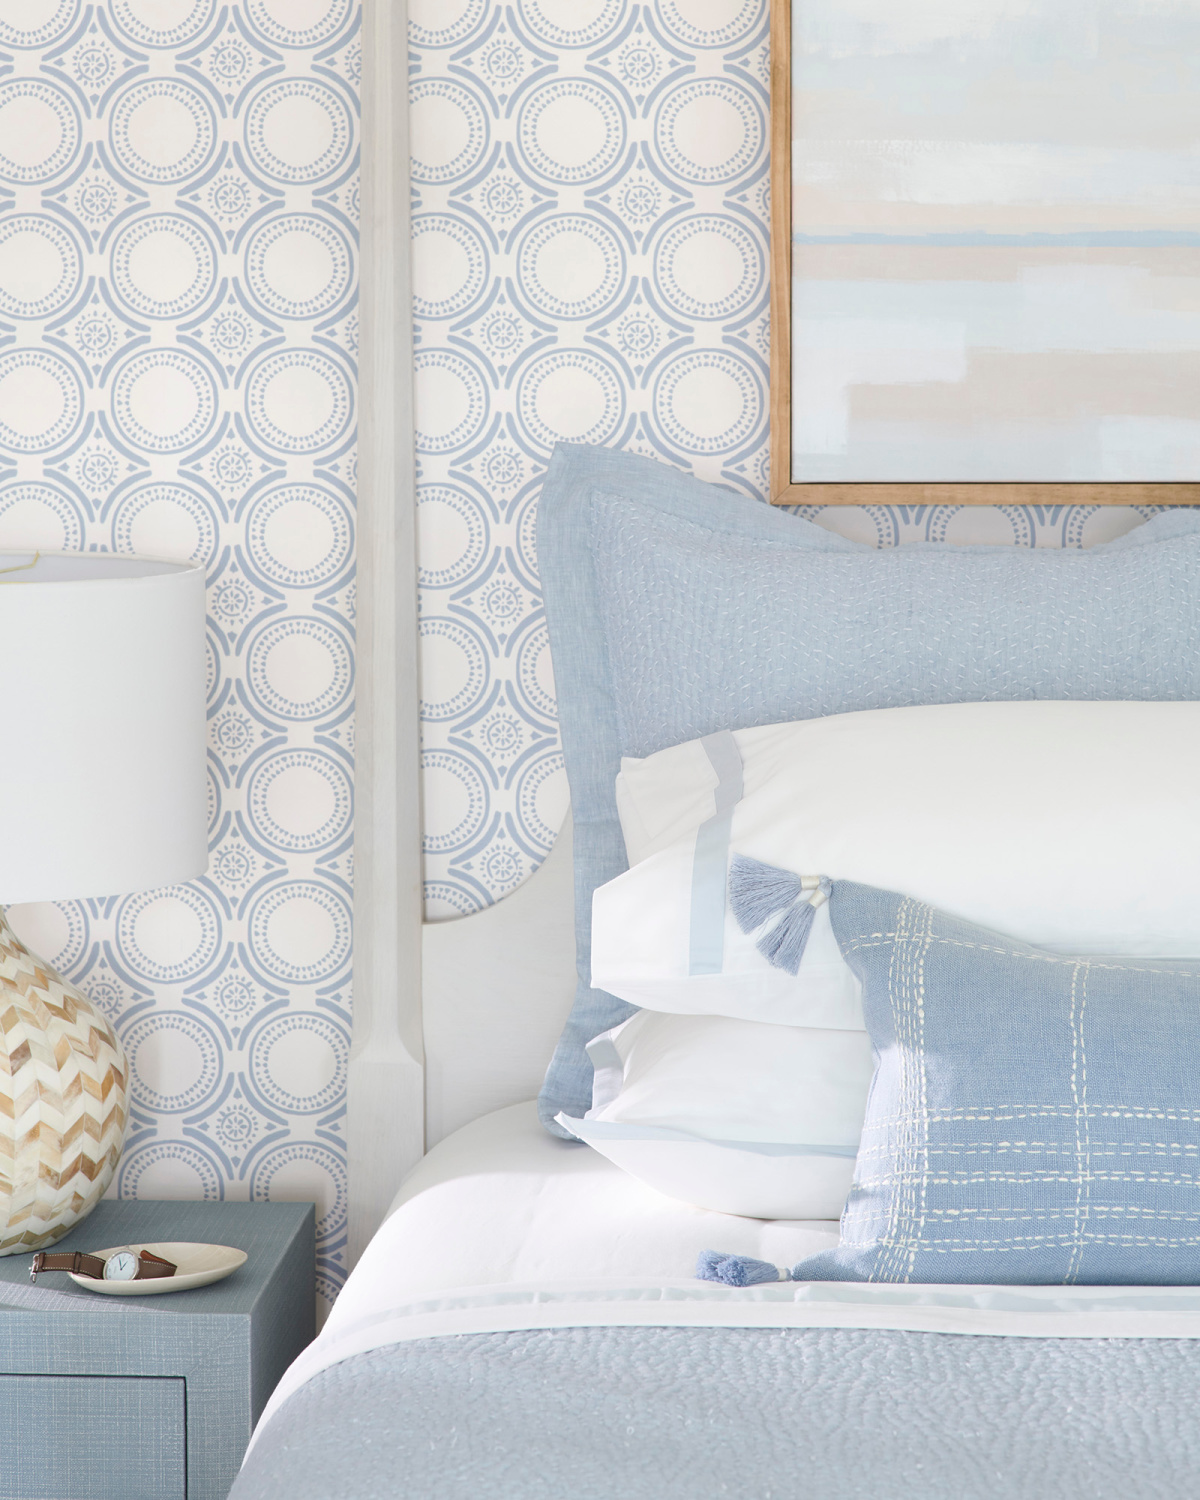 Blue and white coastal bedroom with classic wallpaper (Pesaro) with a chambray hue - Serena & Lily. #coastalbedroom #bluebedrooms